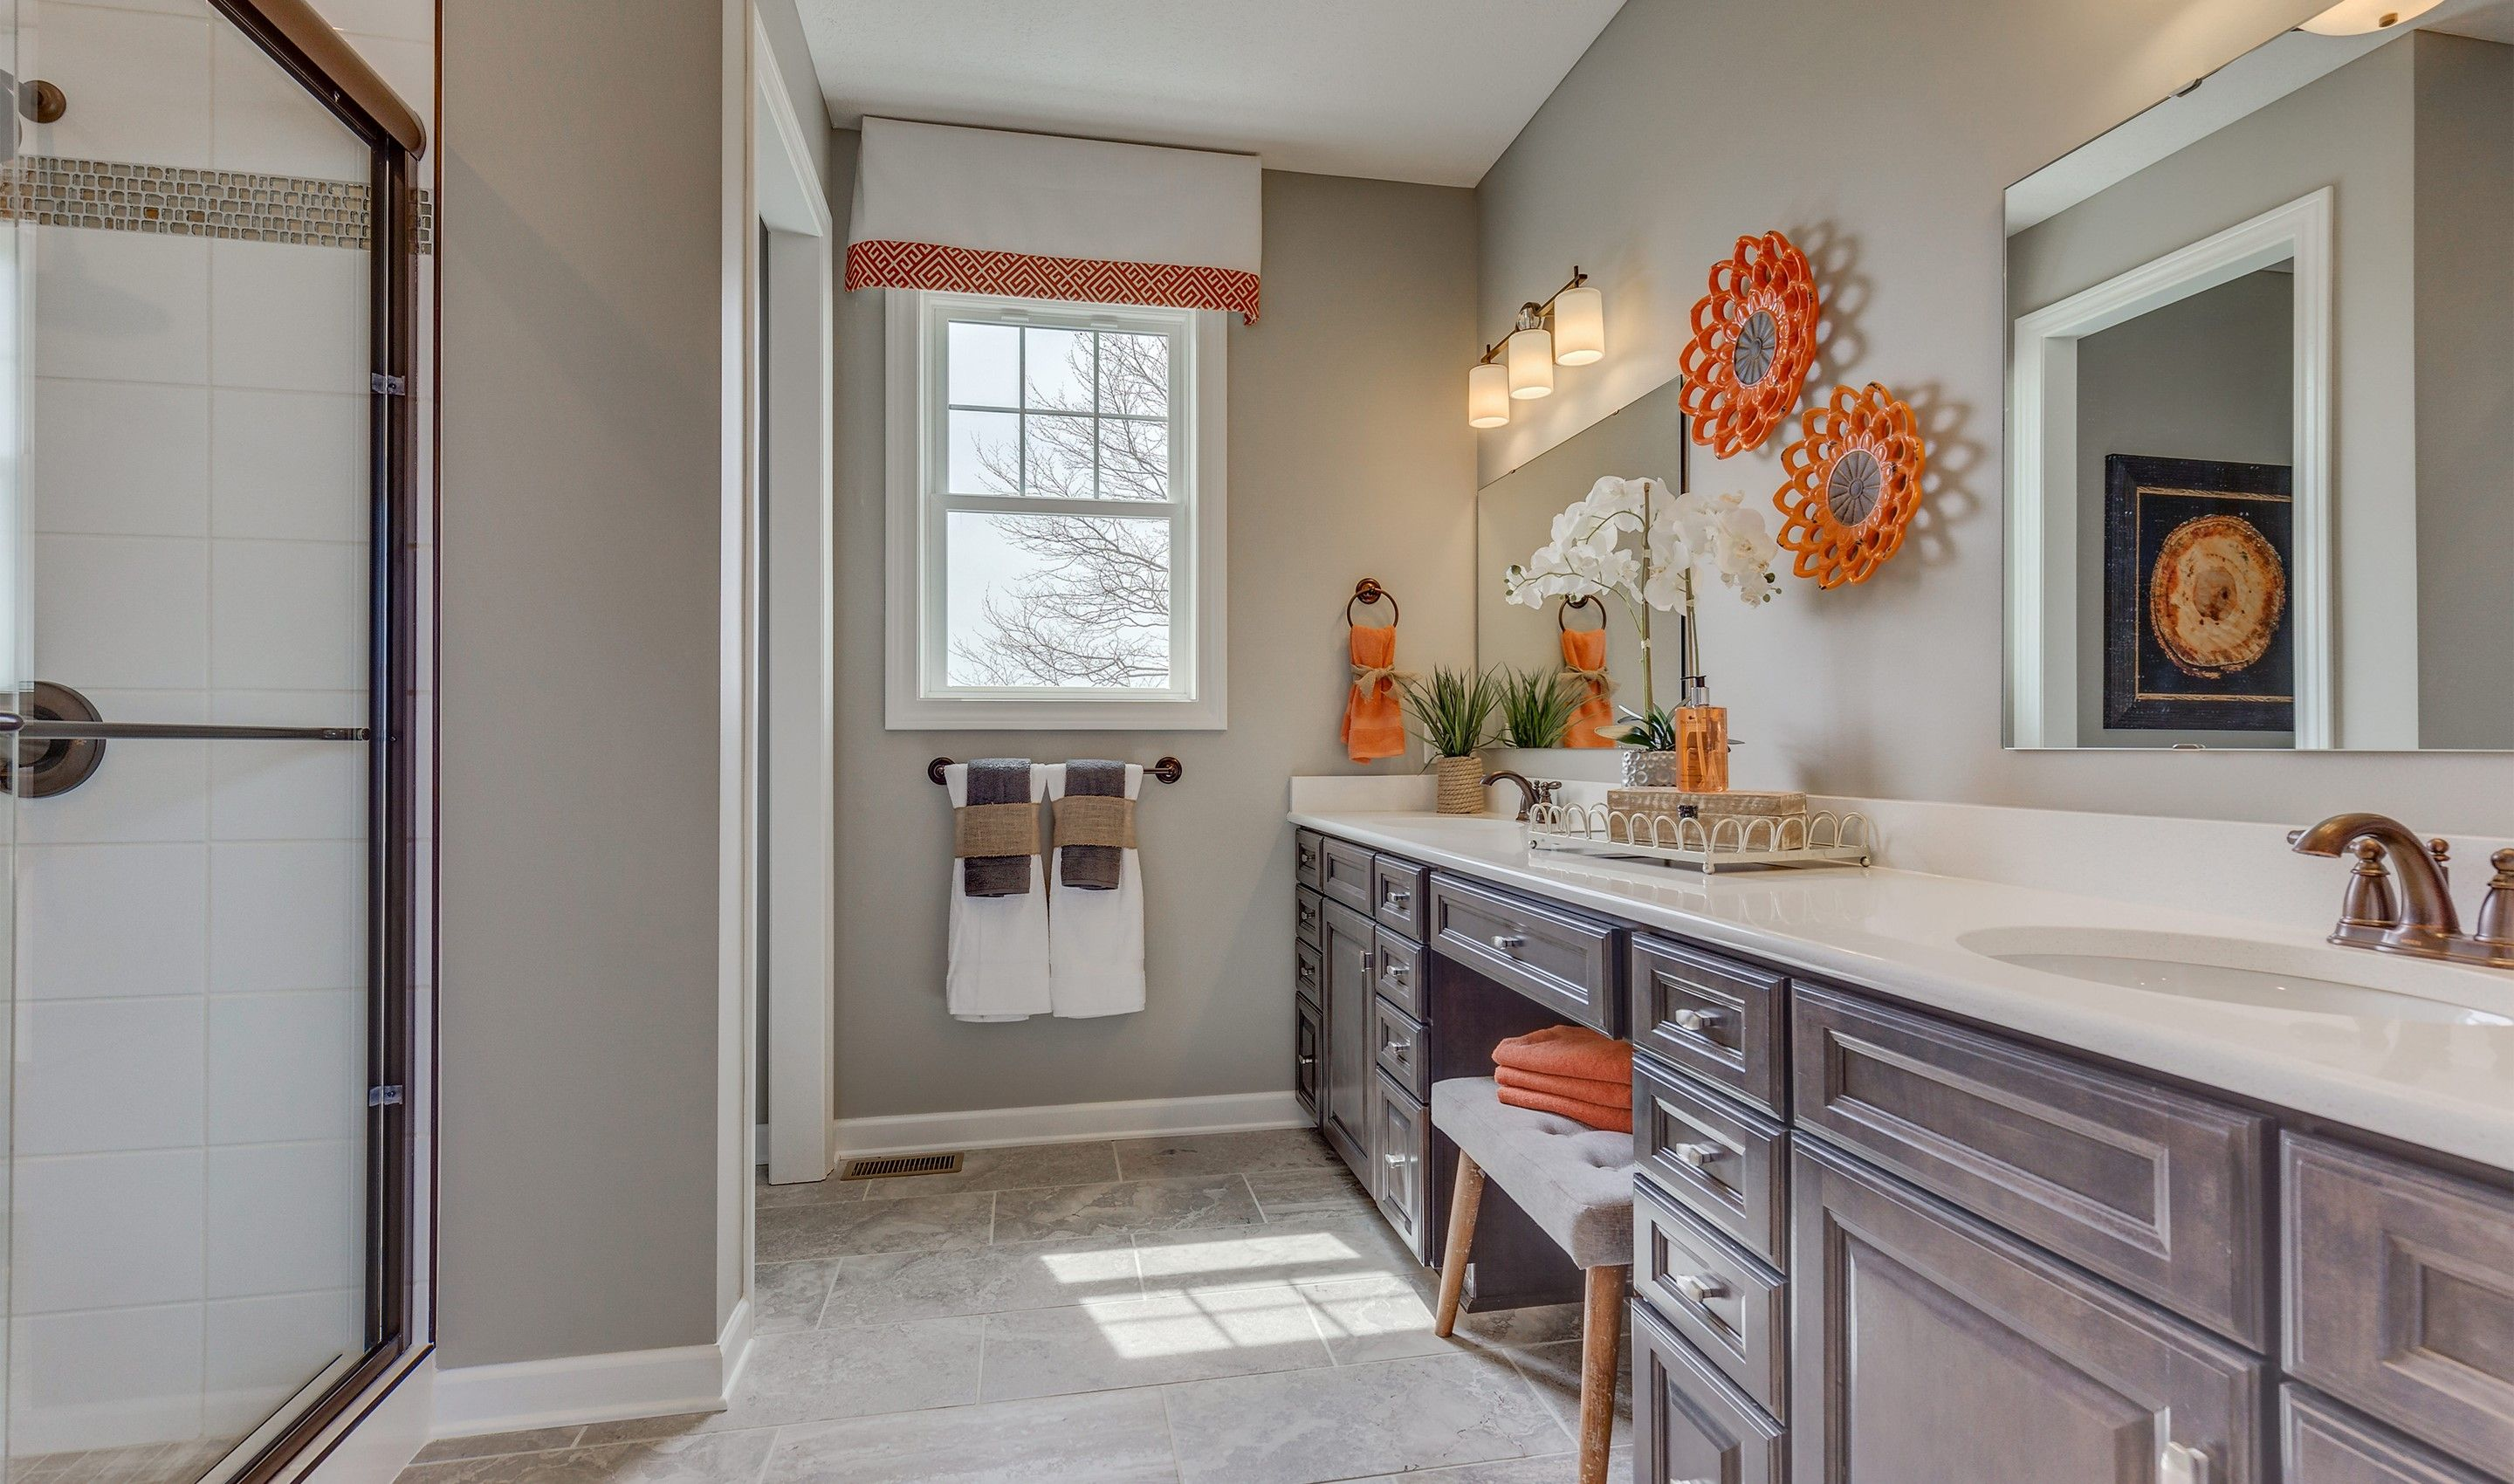 Bathroom featured in the Faulkner By K. Hovnanian® Homes - Build on Your Lot